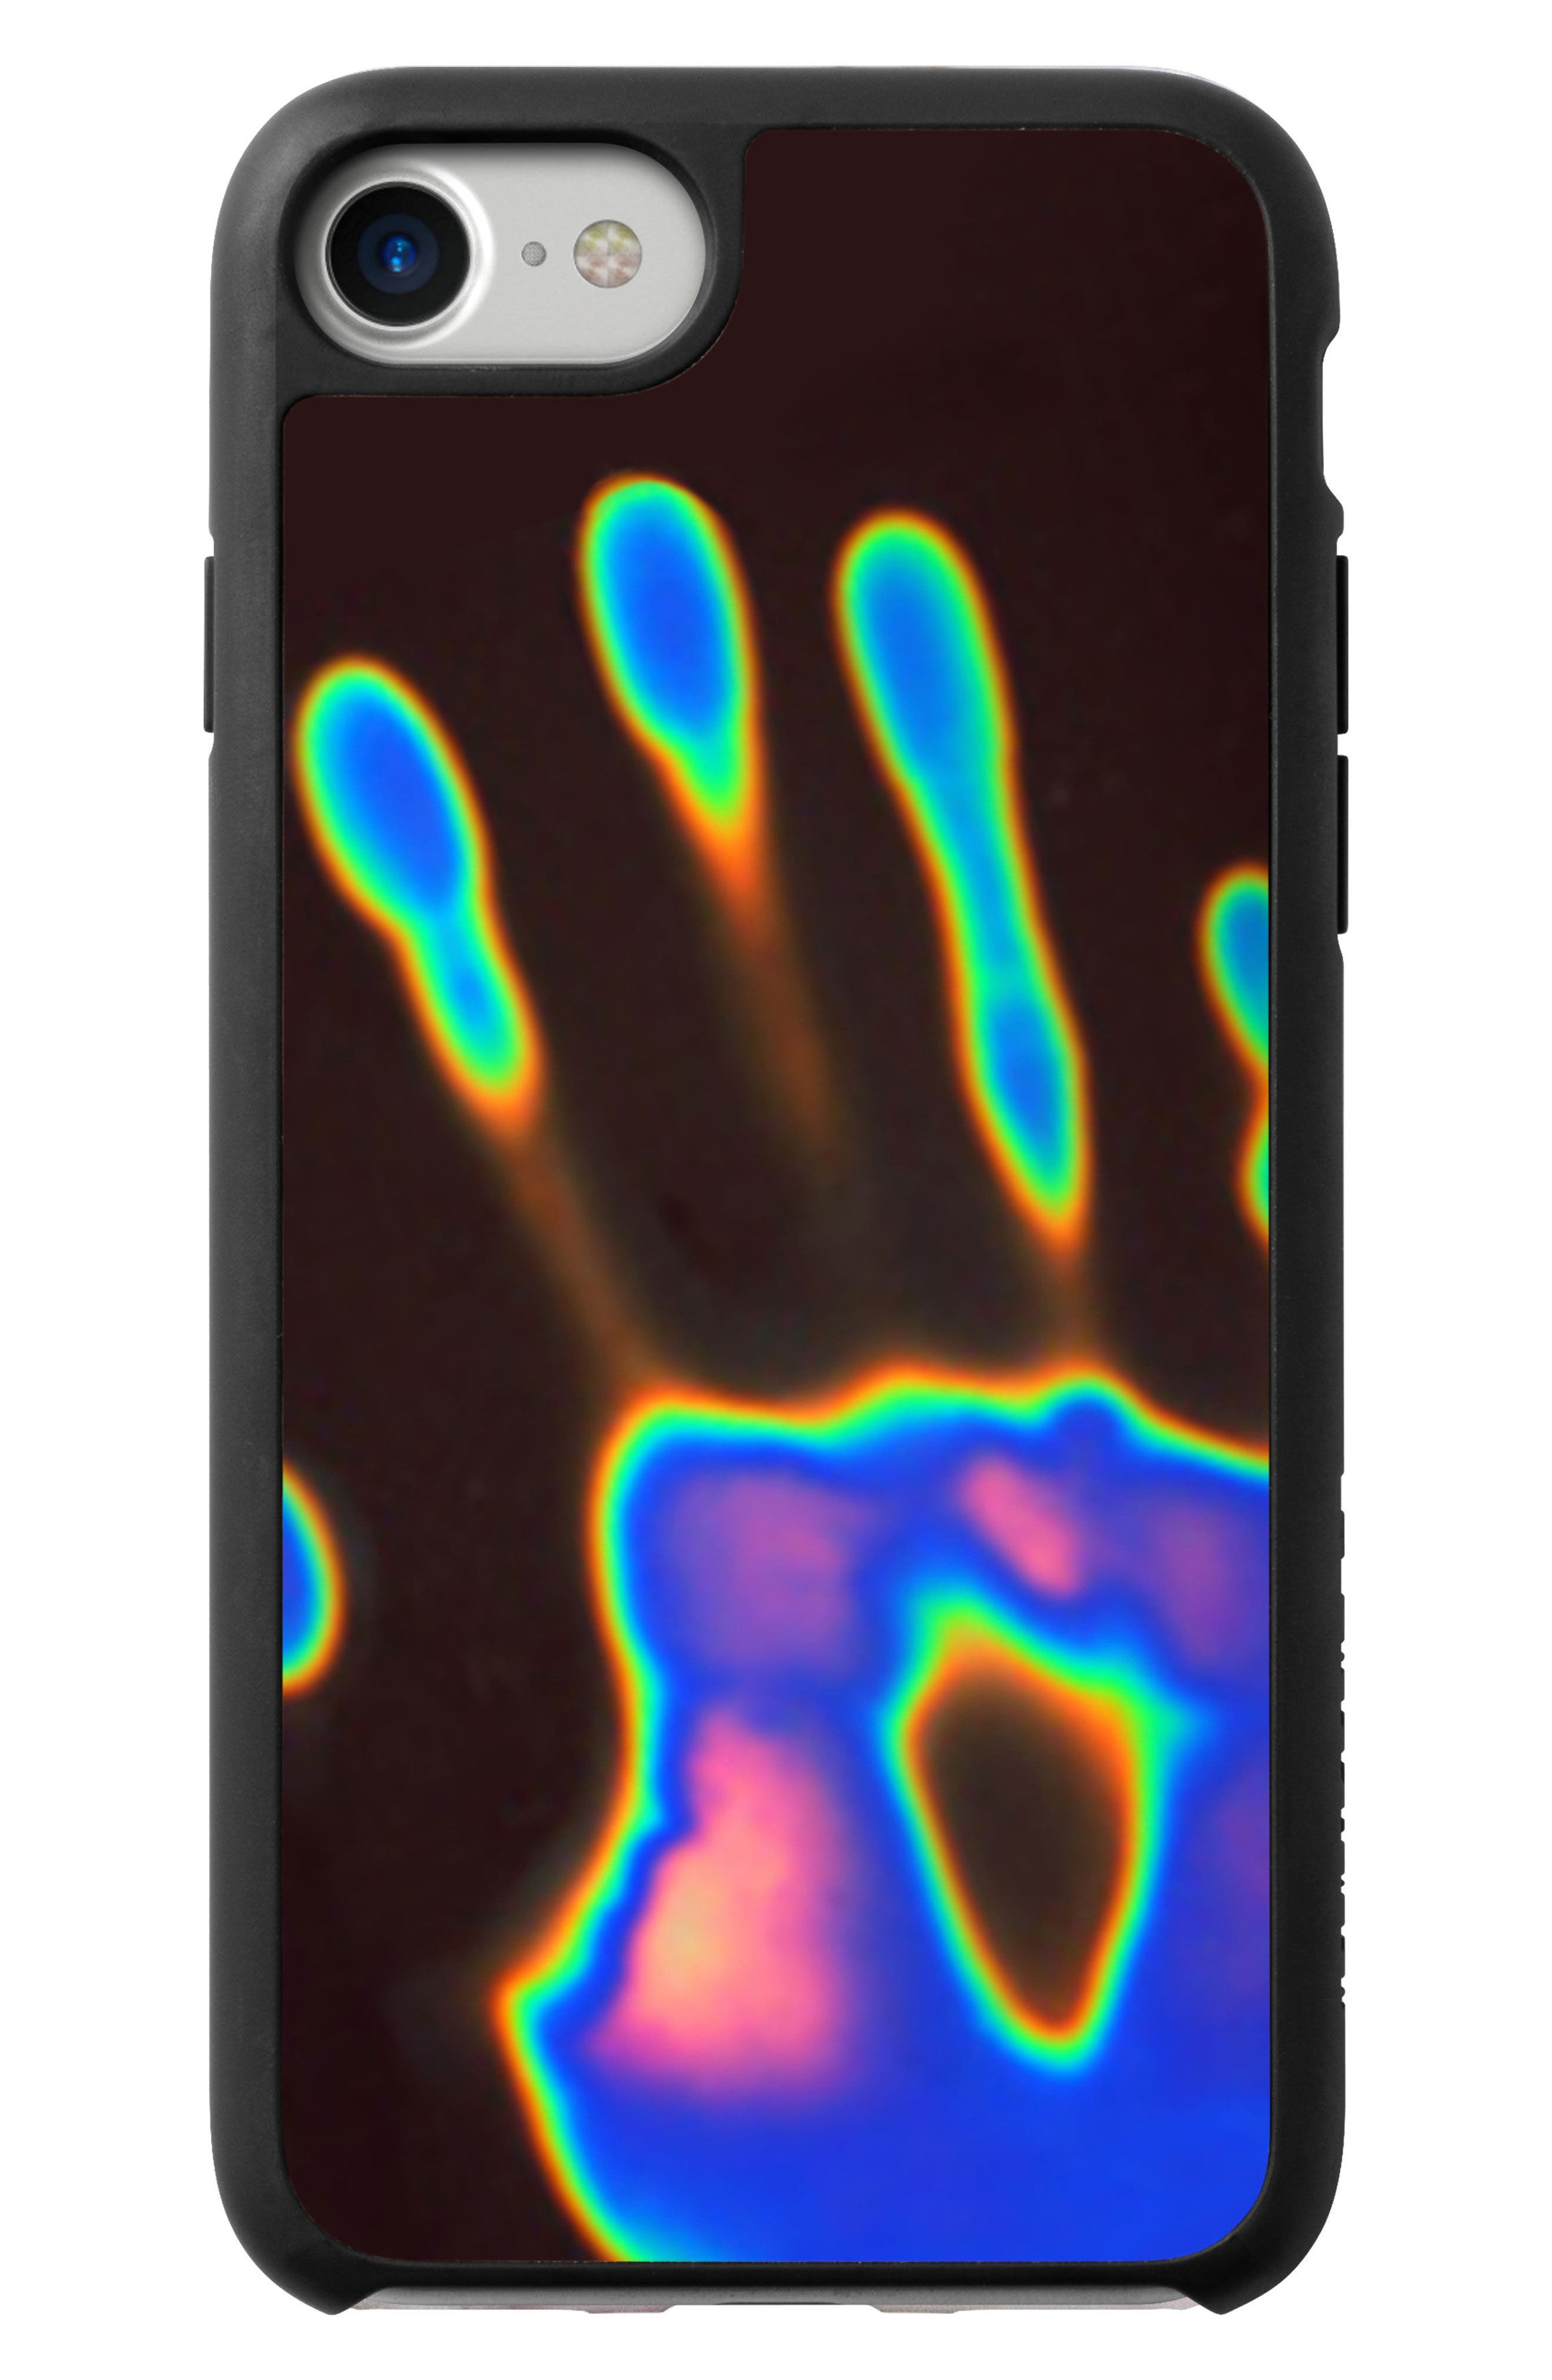 Main Image - Recover Mood Ring Thermochromic iPhone 6/6s/7/8 Case